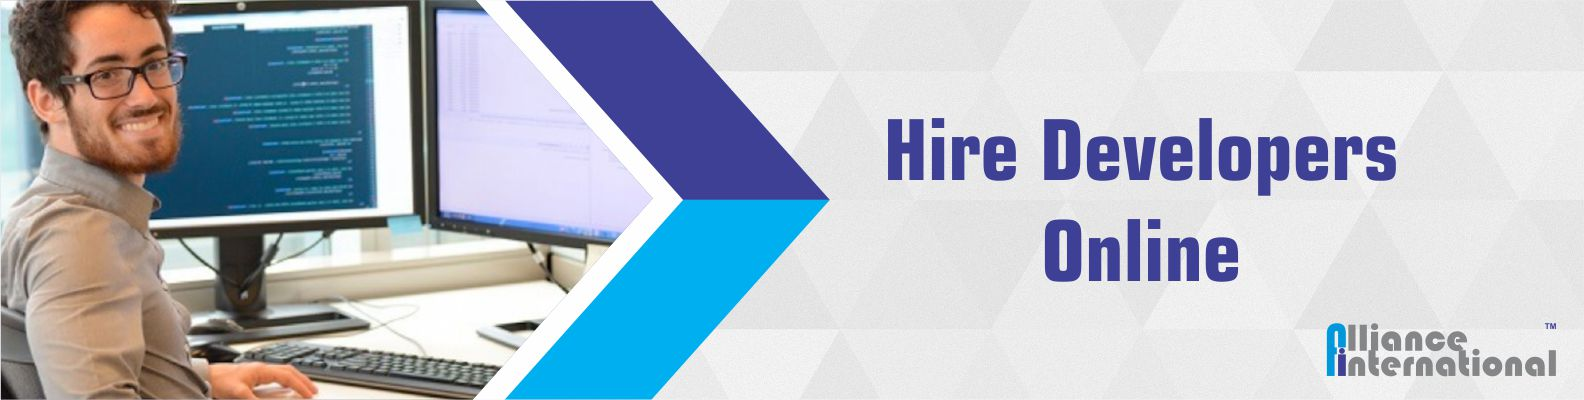 Hire Developers Online